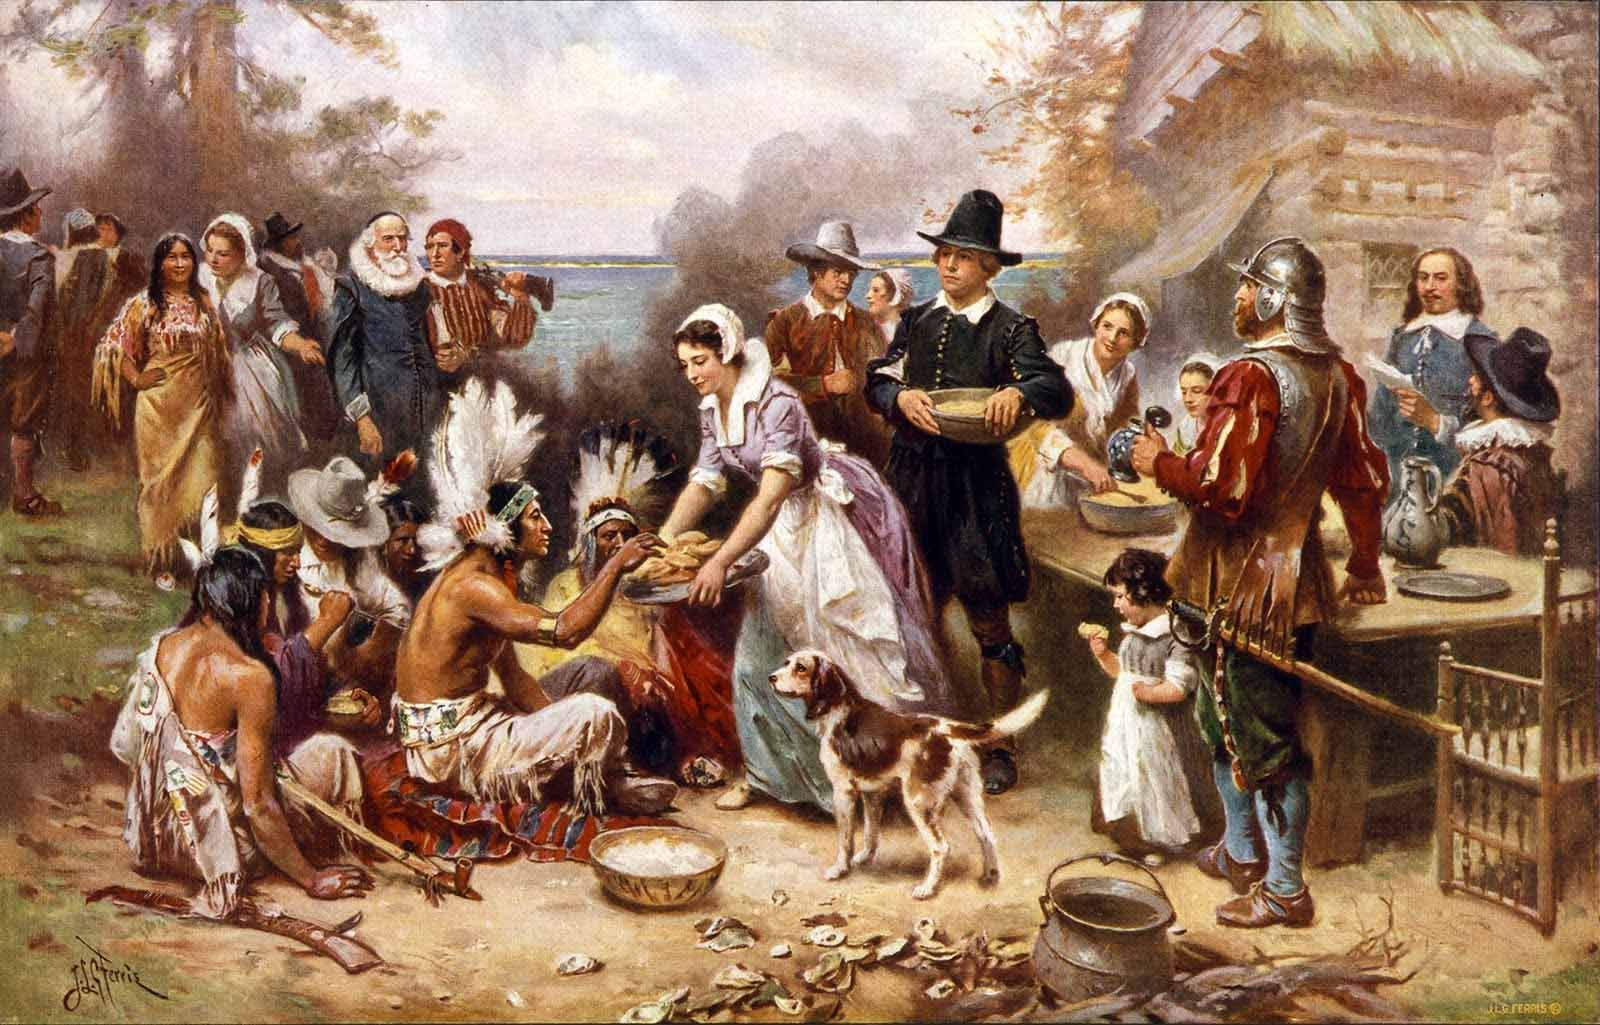 The Image of the First Thanksgiving Day